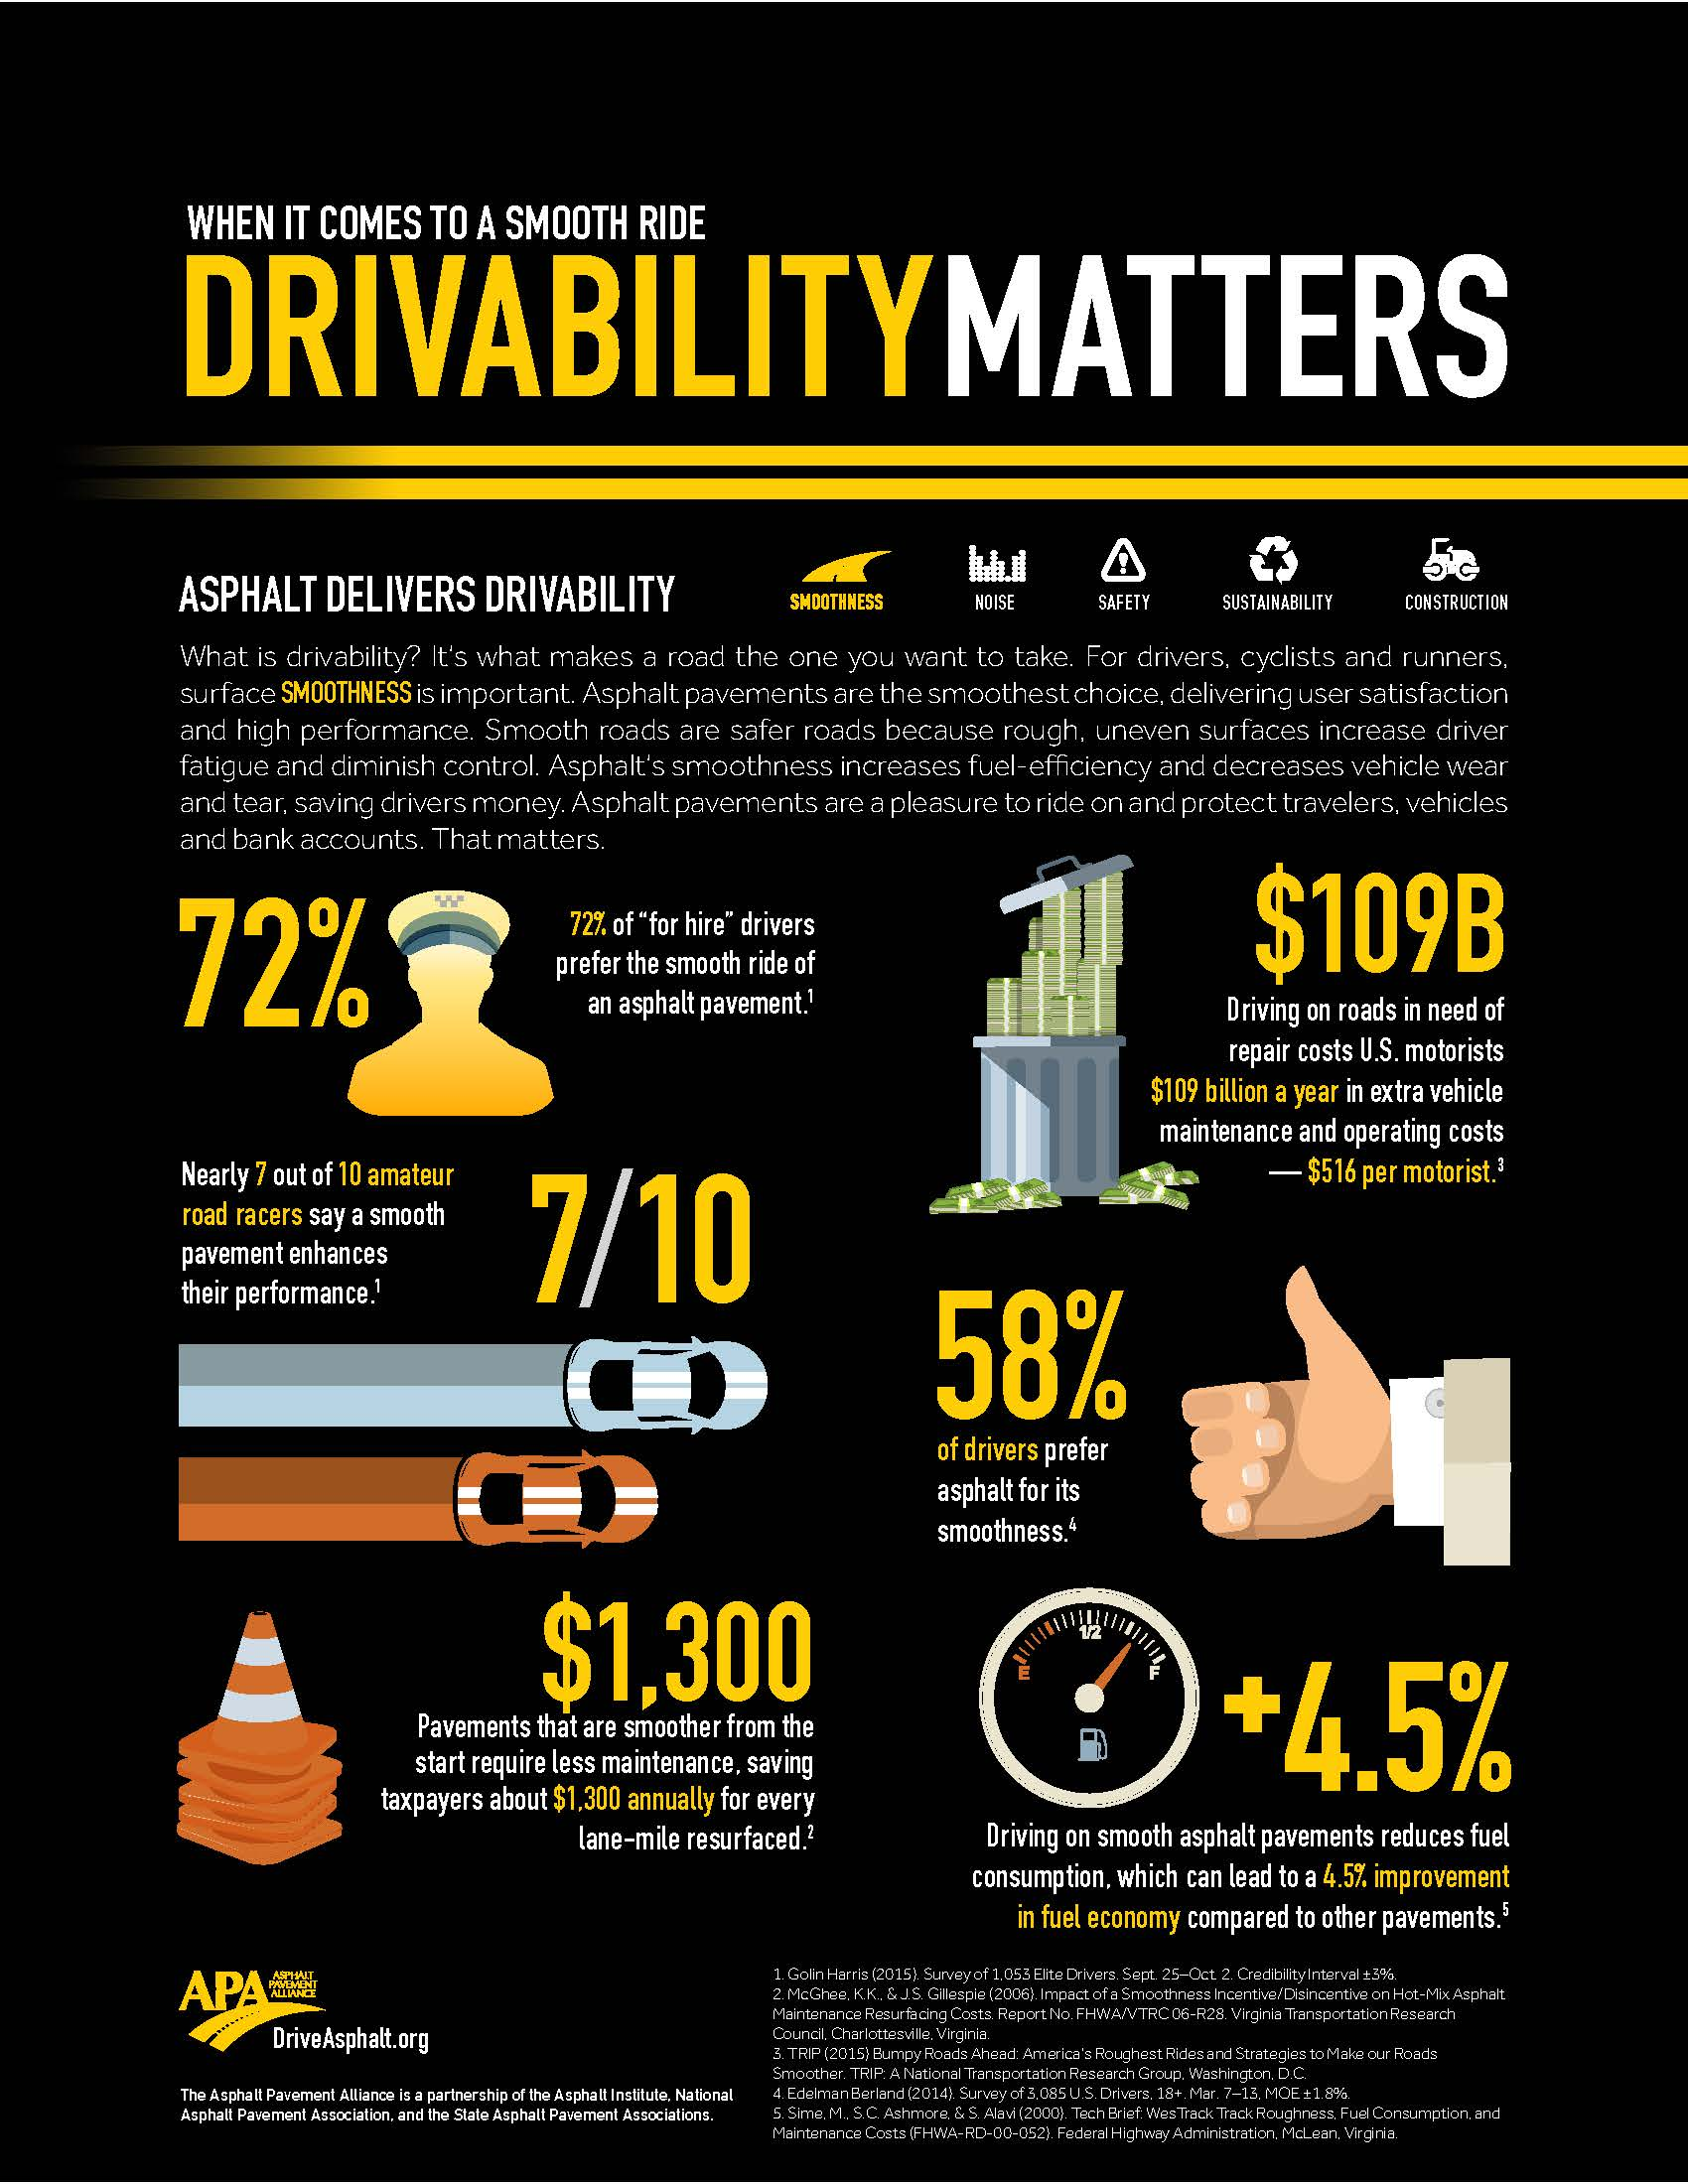 When it comes to a smooth ride, drivability matters.